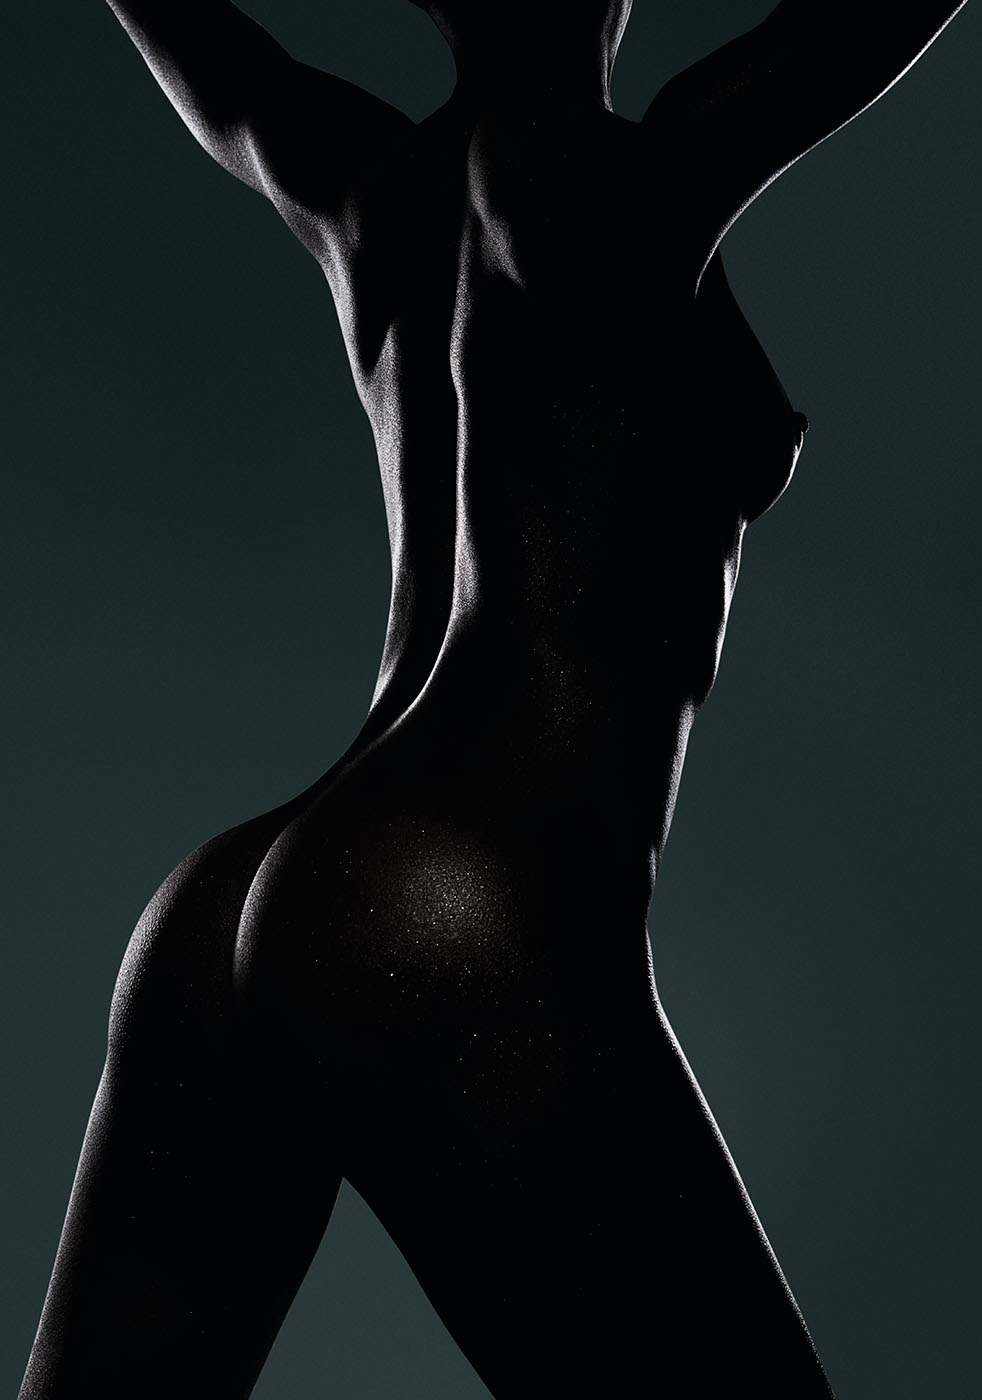 Dark nude female torso in silhouette by photographer Kenneth Rimm